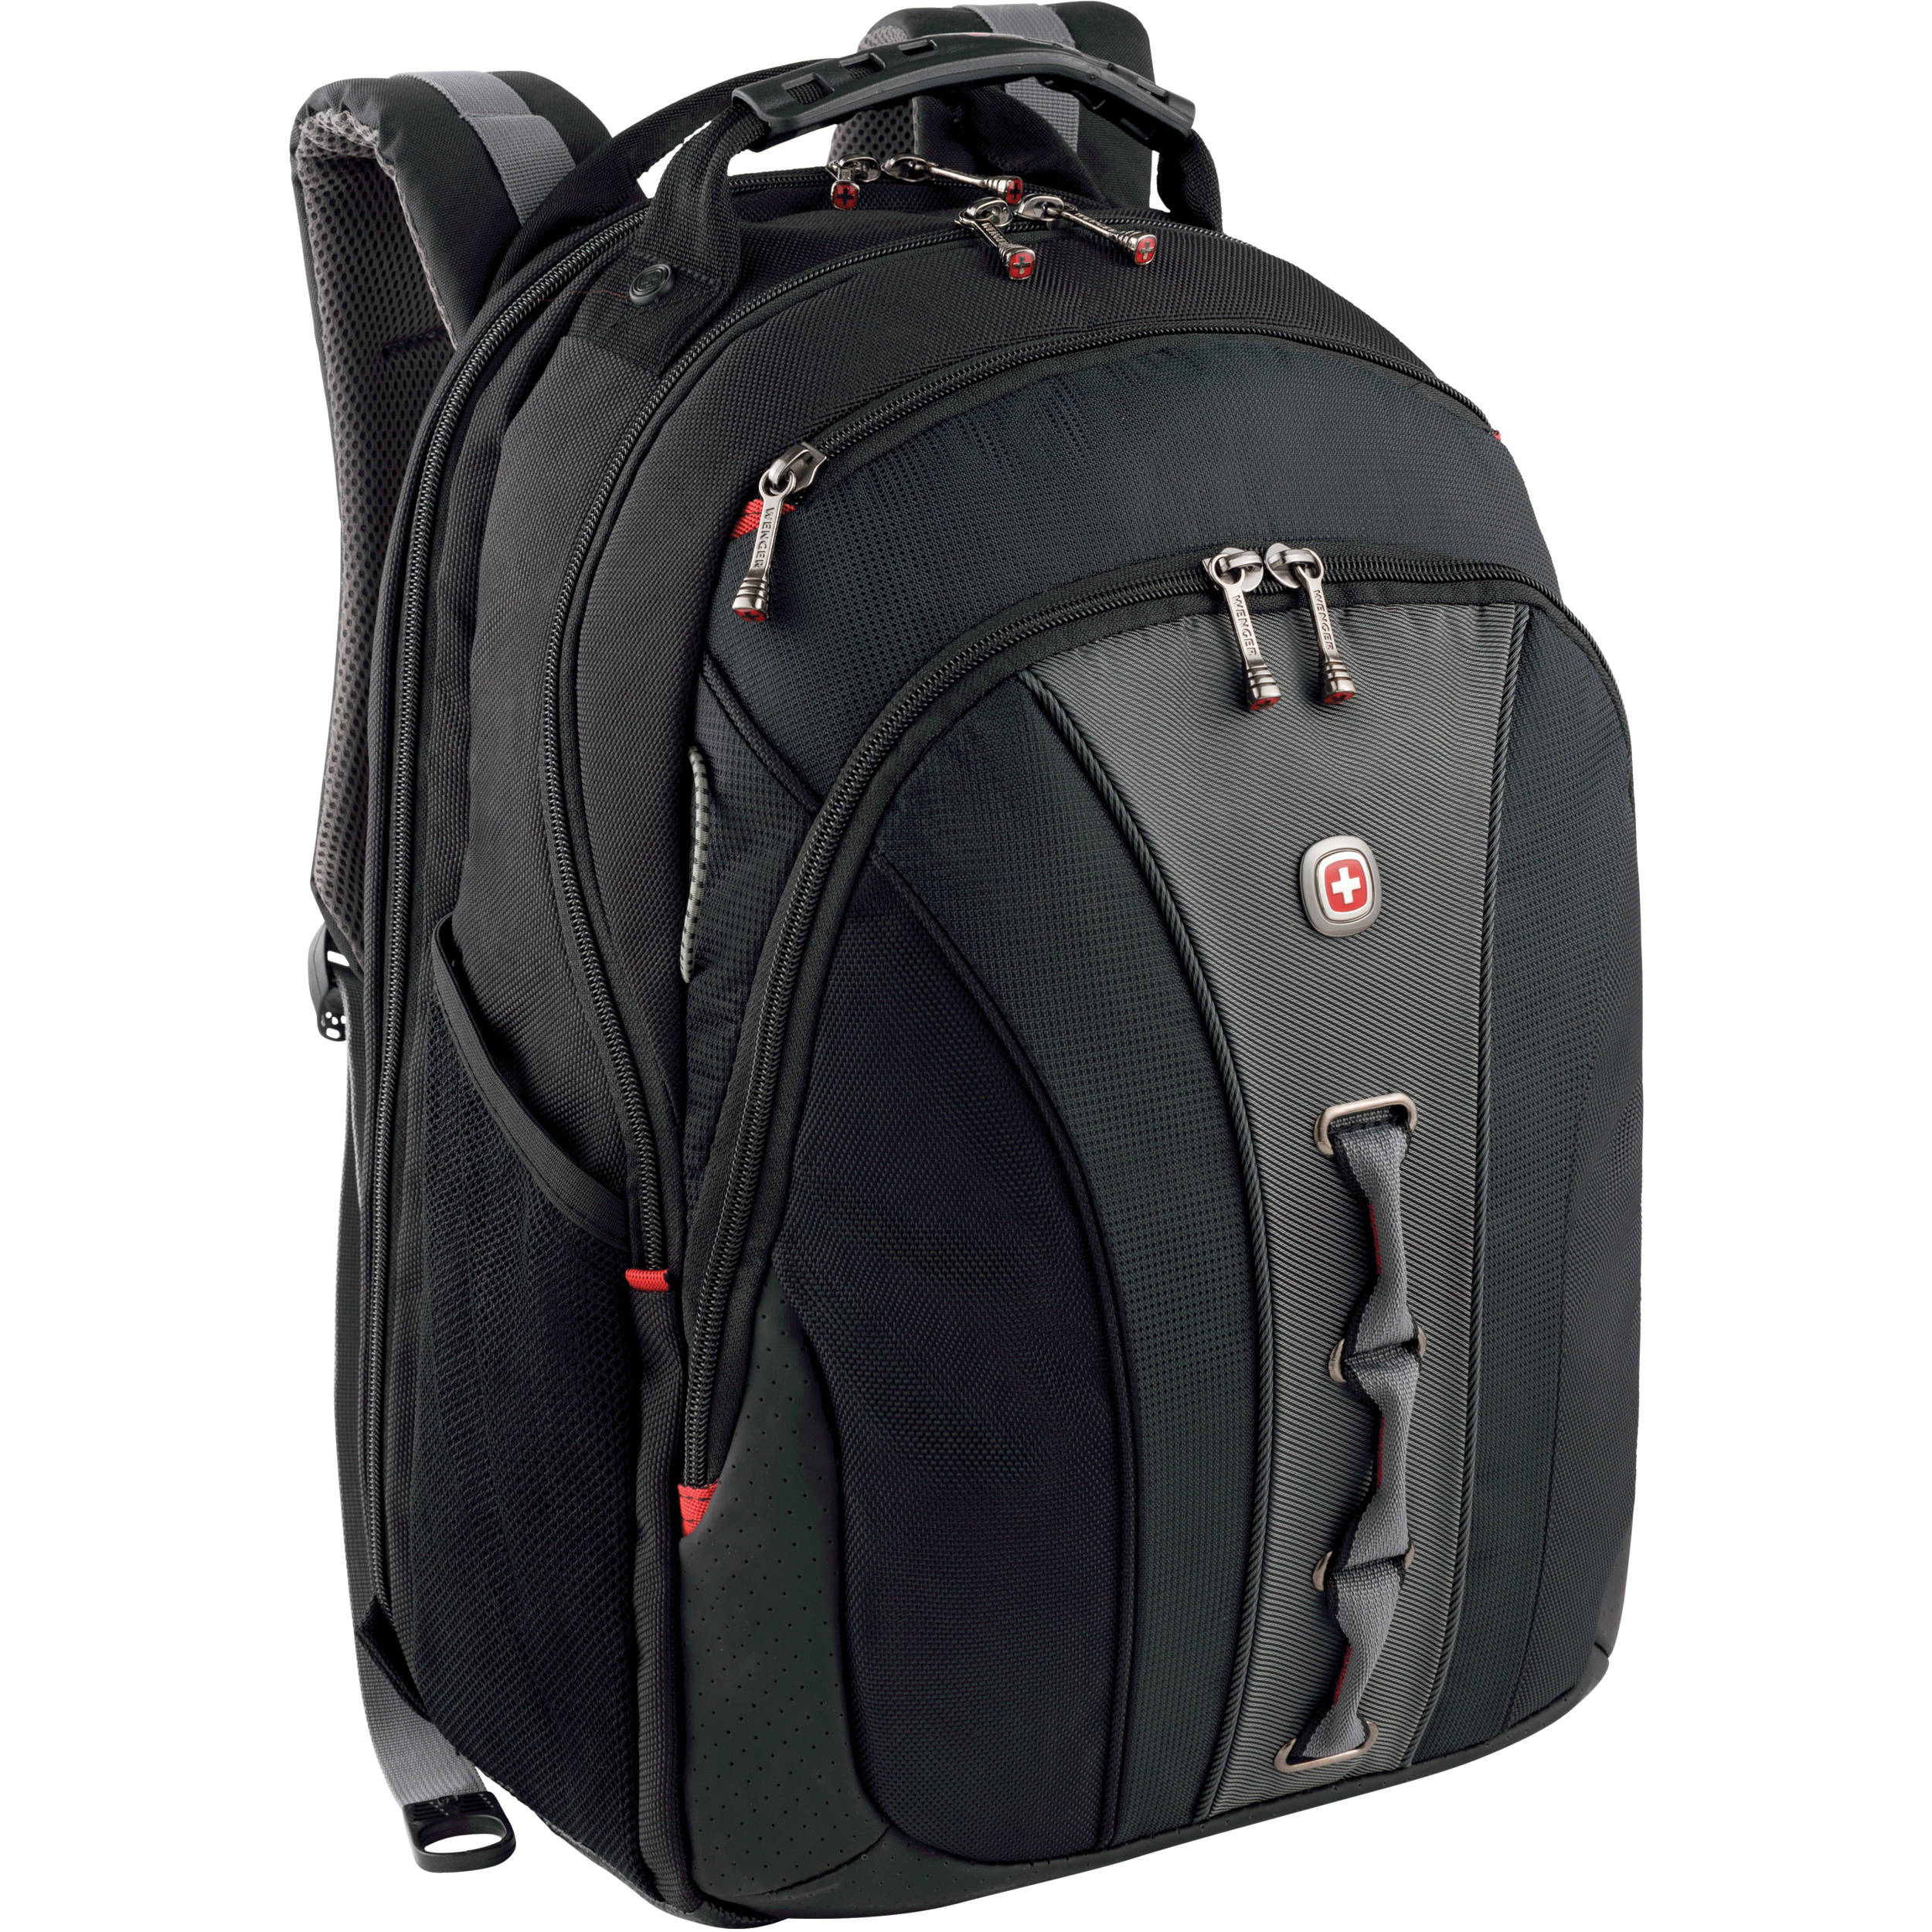 Swiss Gear Backpack Warranty JCjKppMQ